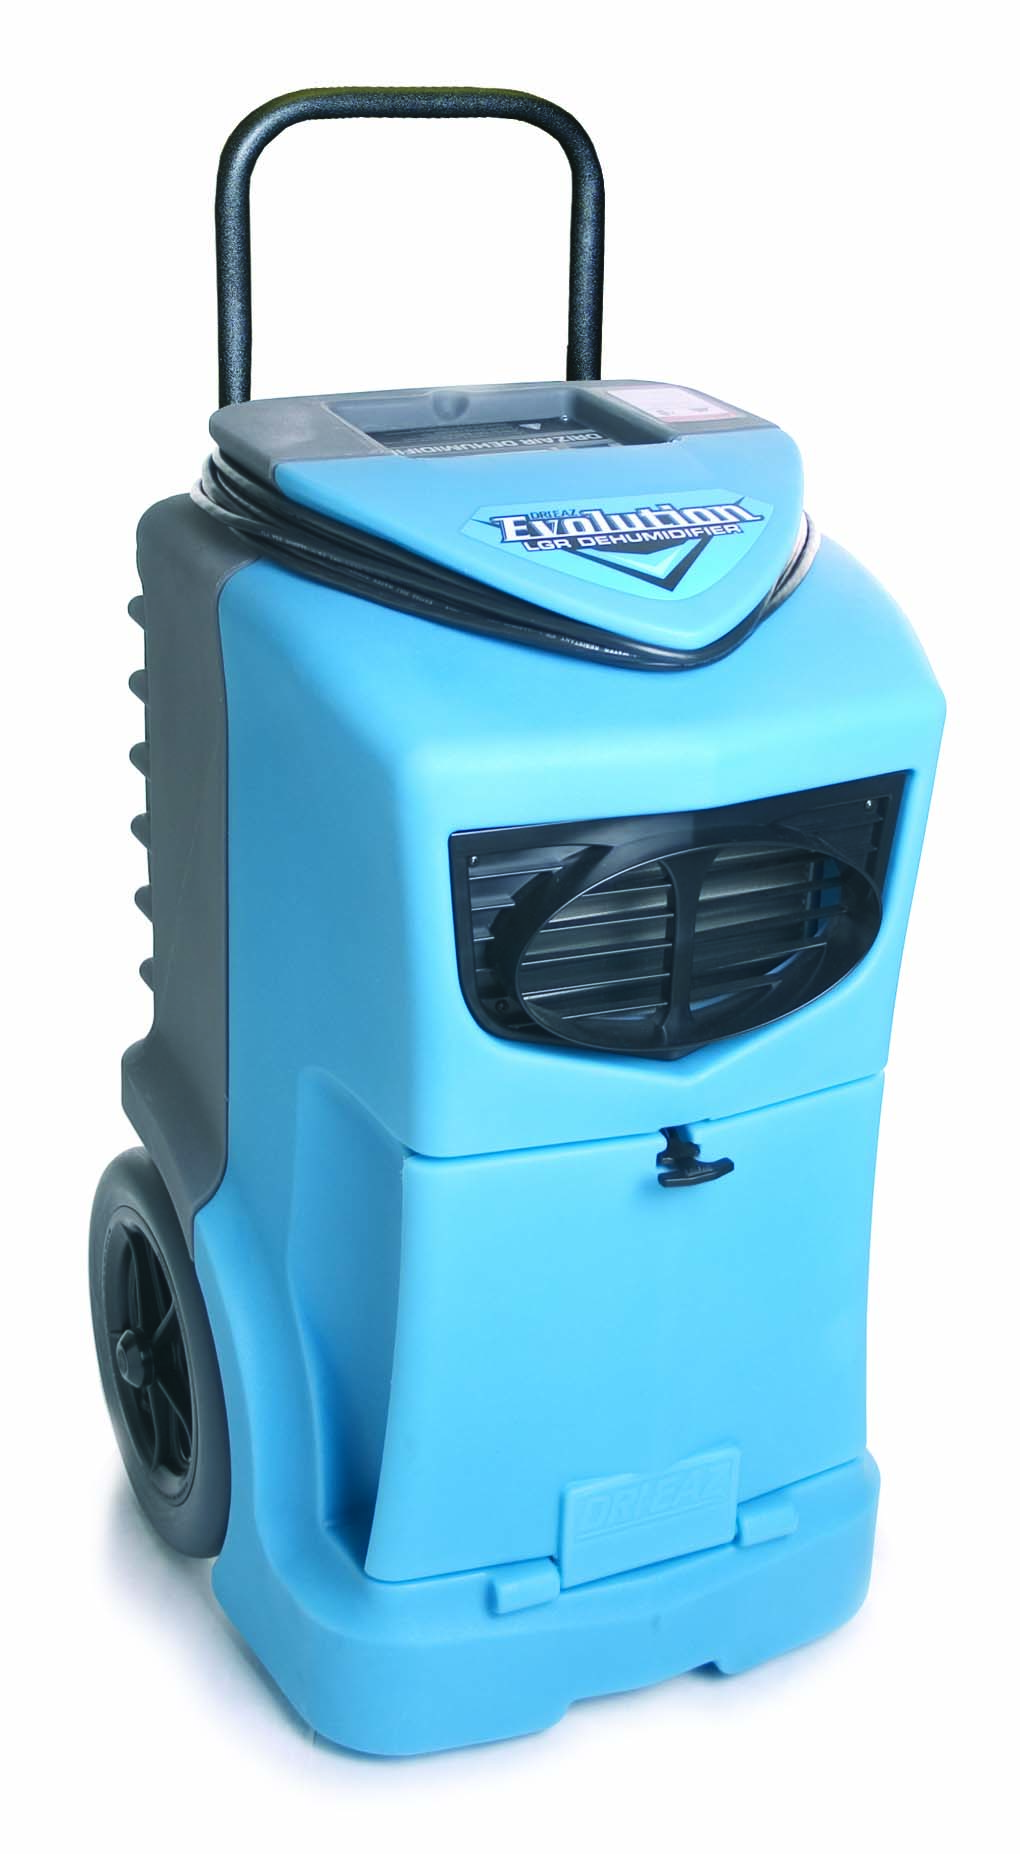 DriEaz Evolution Refrigerant Dehumidifier